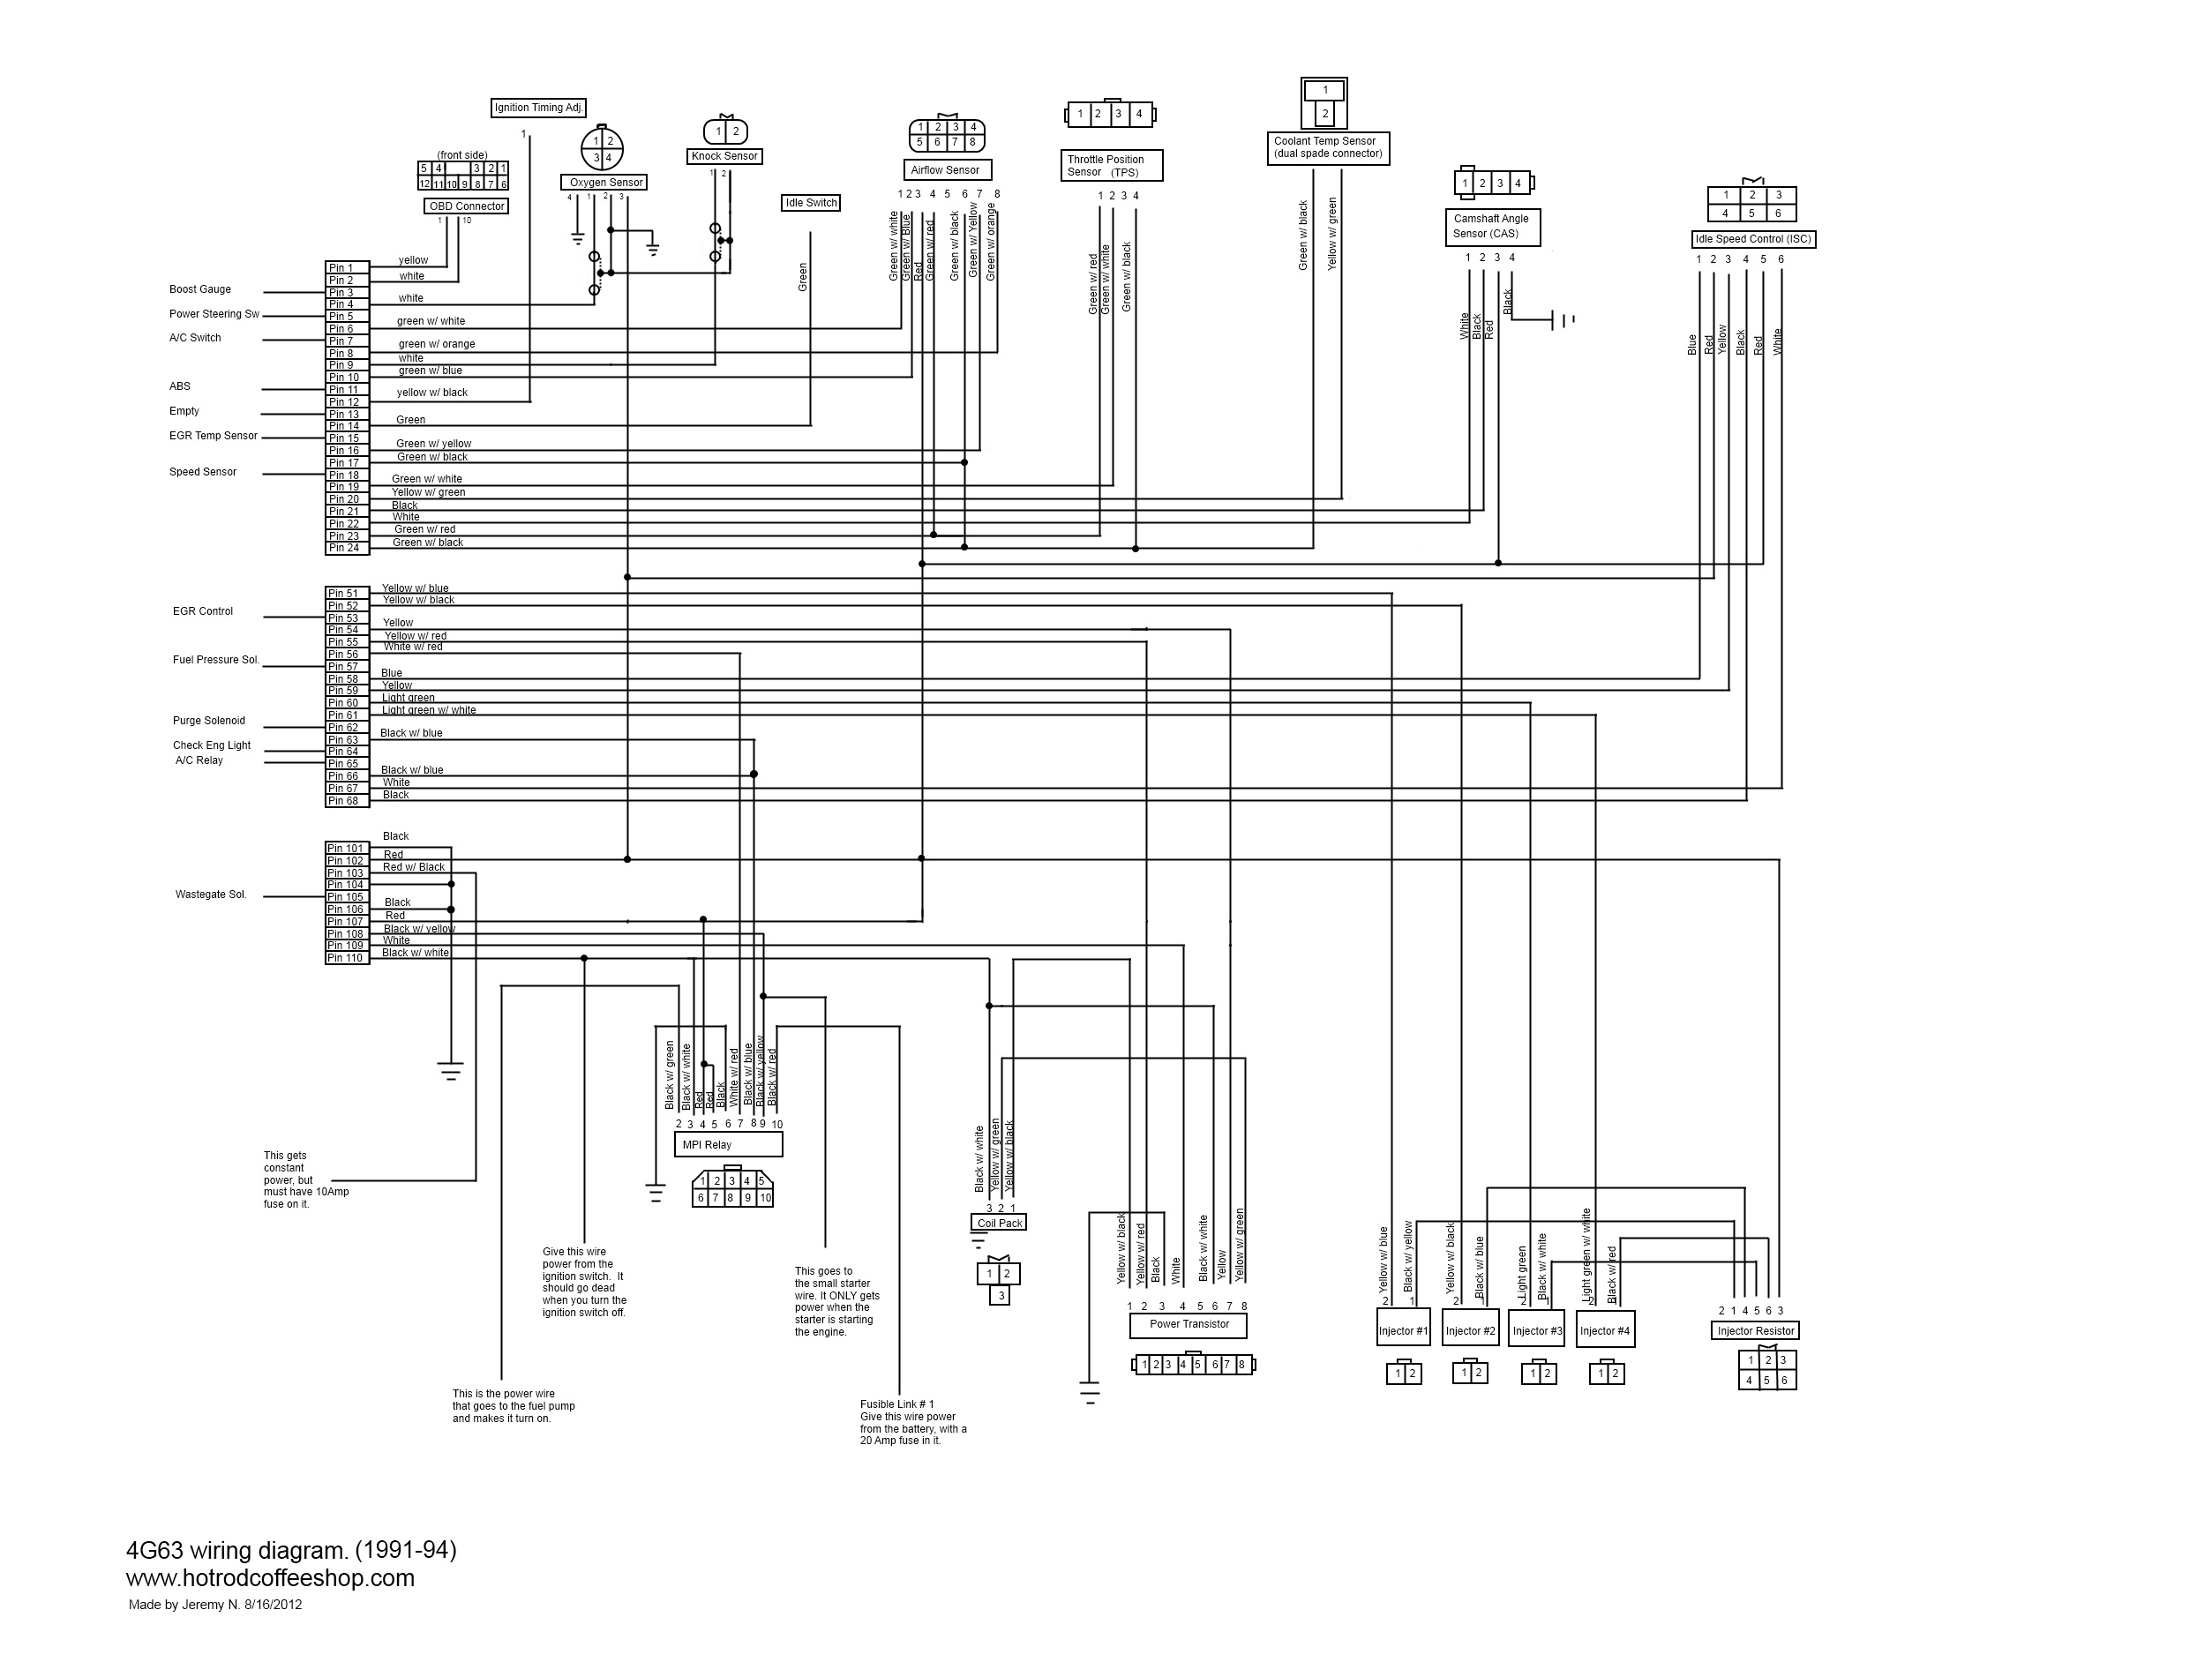 4g63 wiring diagrams    schematics for engine swaps